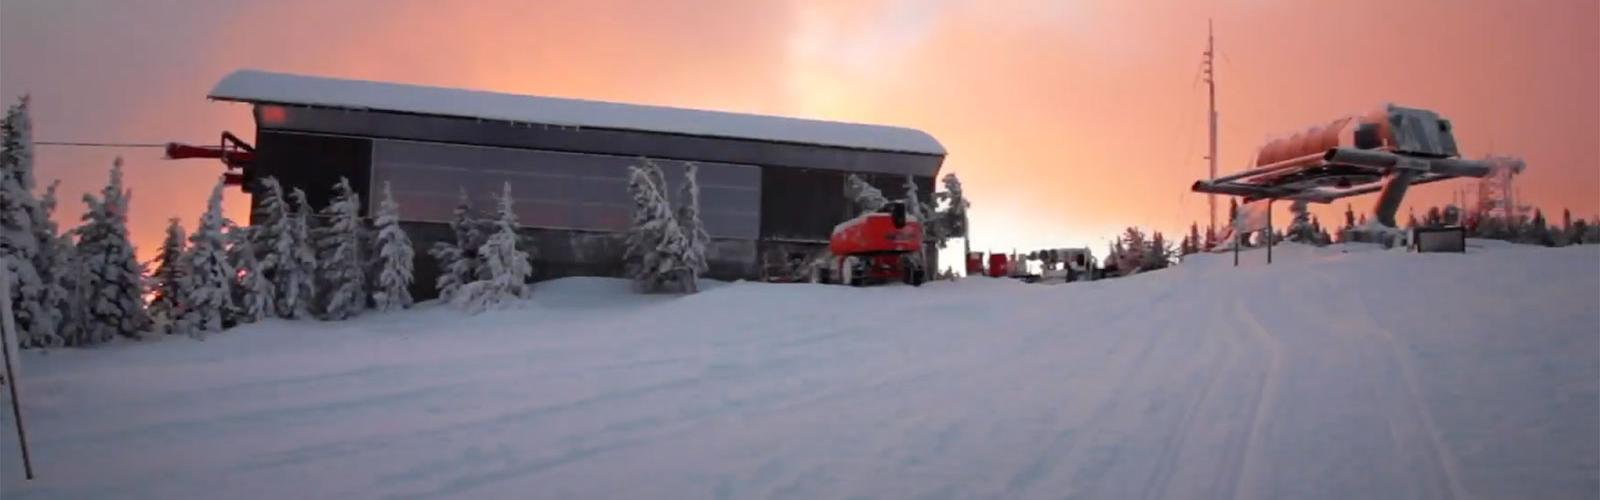 The top terminal of the Wenatchee Express with a lift outside in the snow and sunrise behind